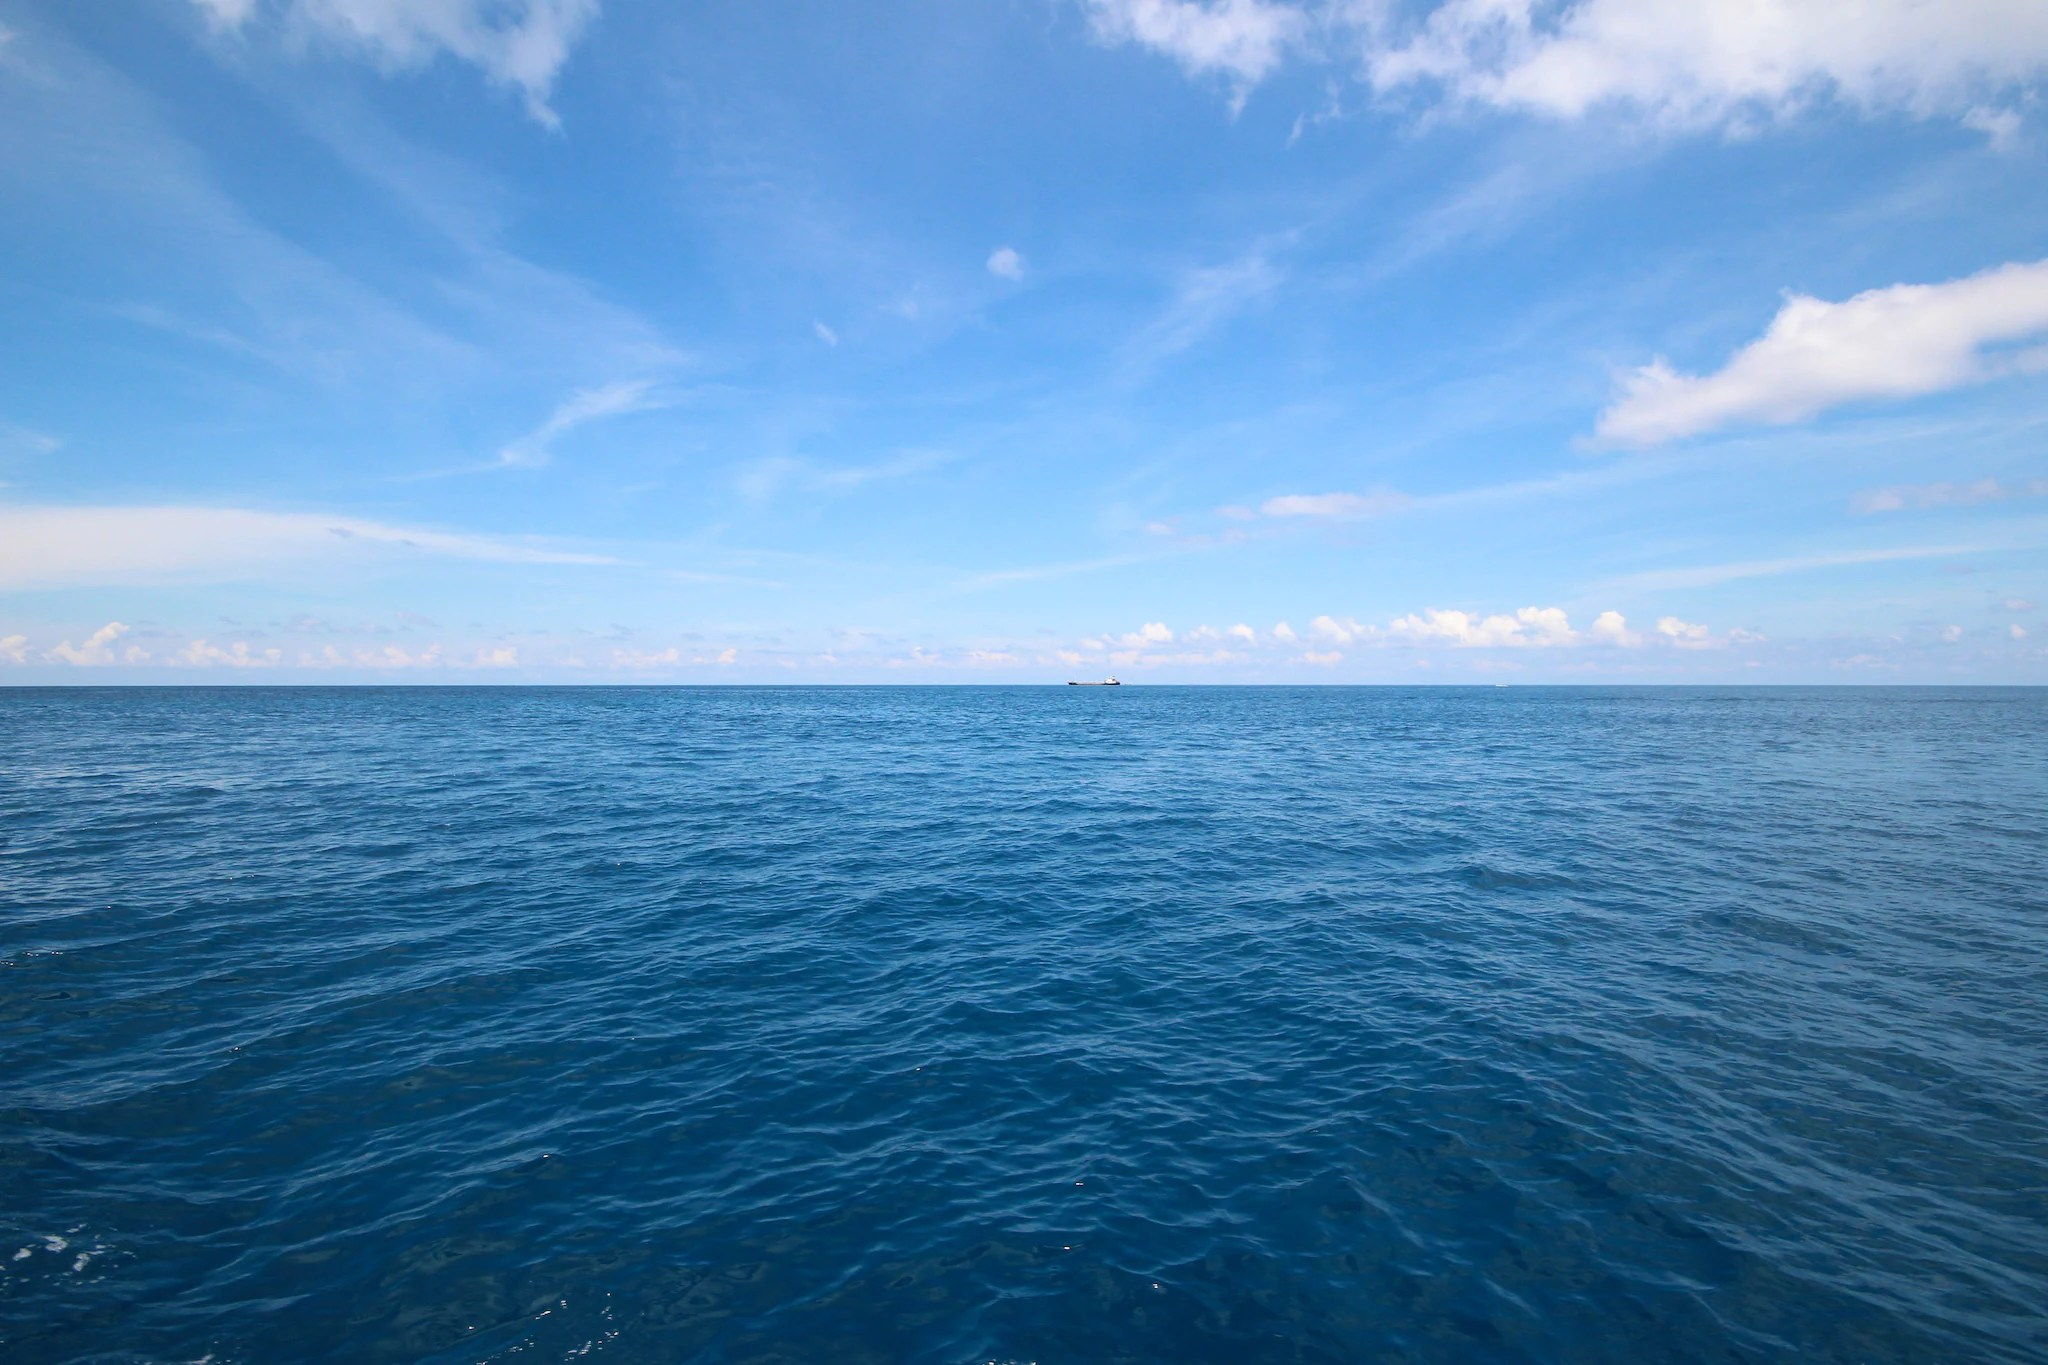 Cruise And Cross The International Date Line